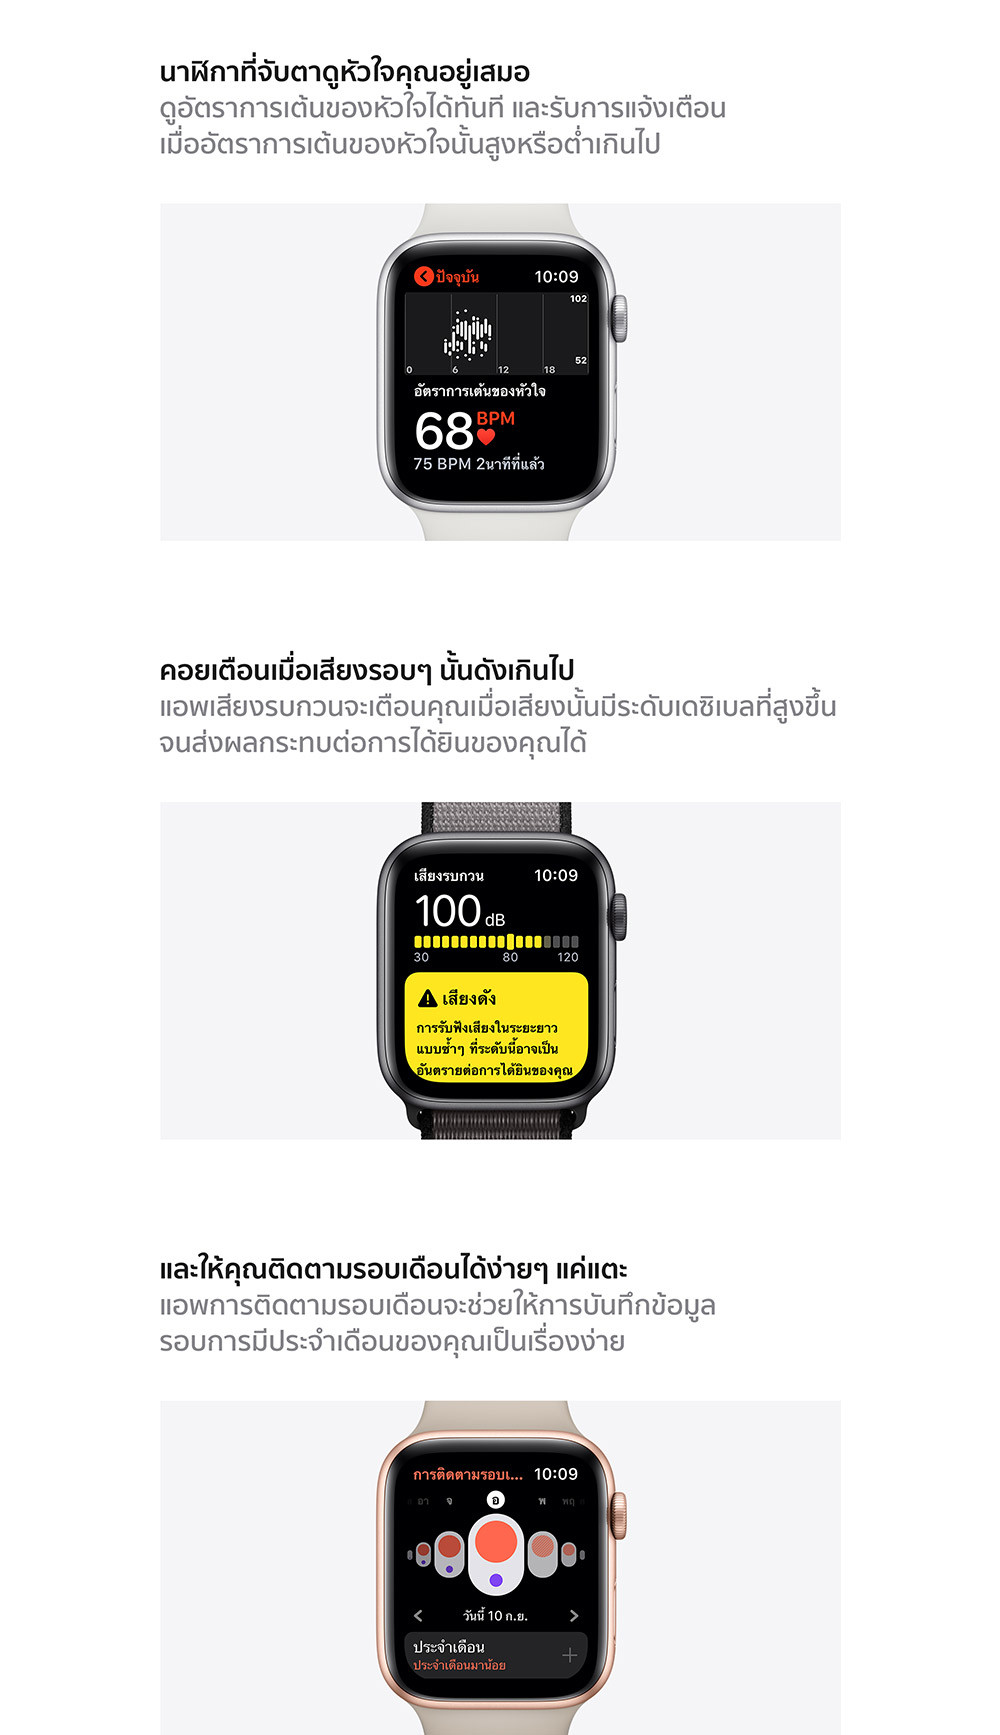 apple-watch-web-product-page_2_2.jpg